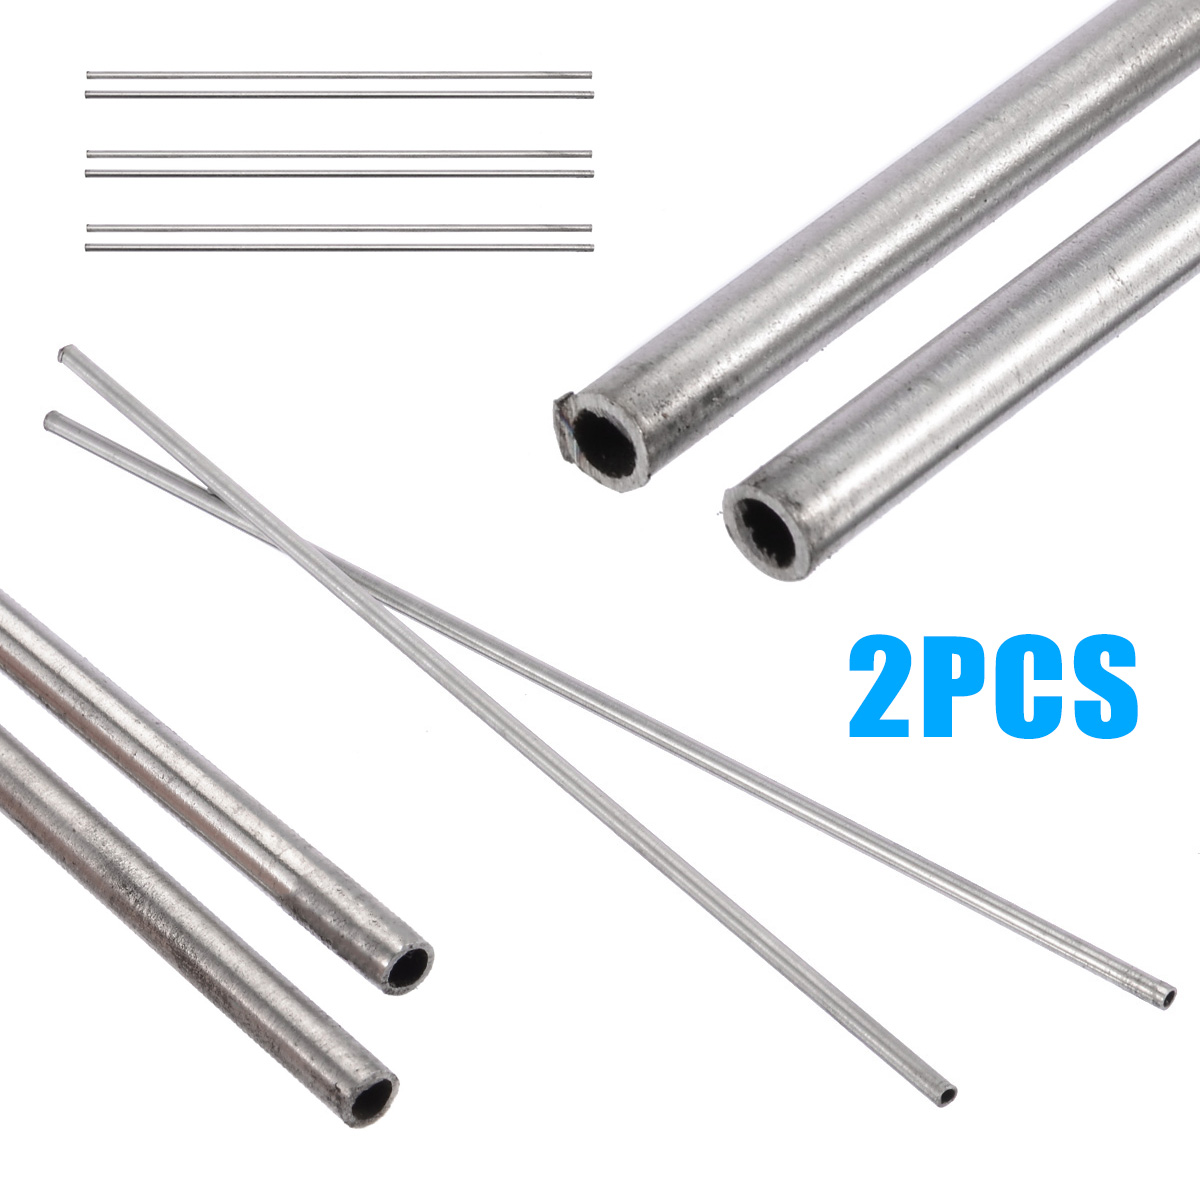 2pcs 304 Stainless Steel Capillary Tube With Corrosion Resistance 4mm OD 3mm ID 250mm Length